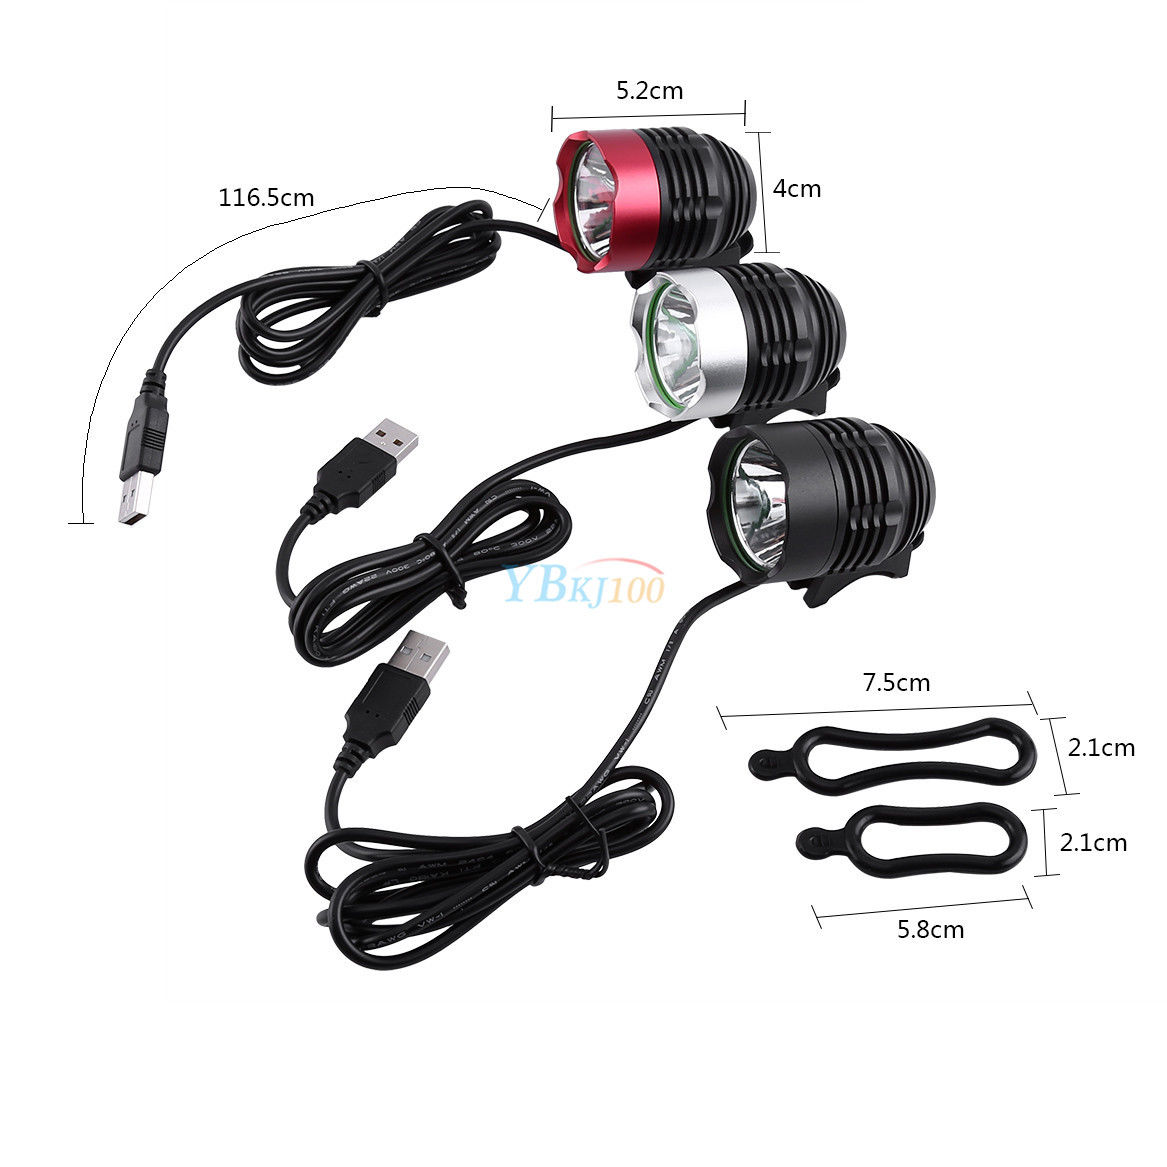 1200LM T6 DC LED Cycle Bike Front Lamp Bicycle Light Headlamp Headlight 3 Mode A